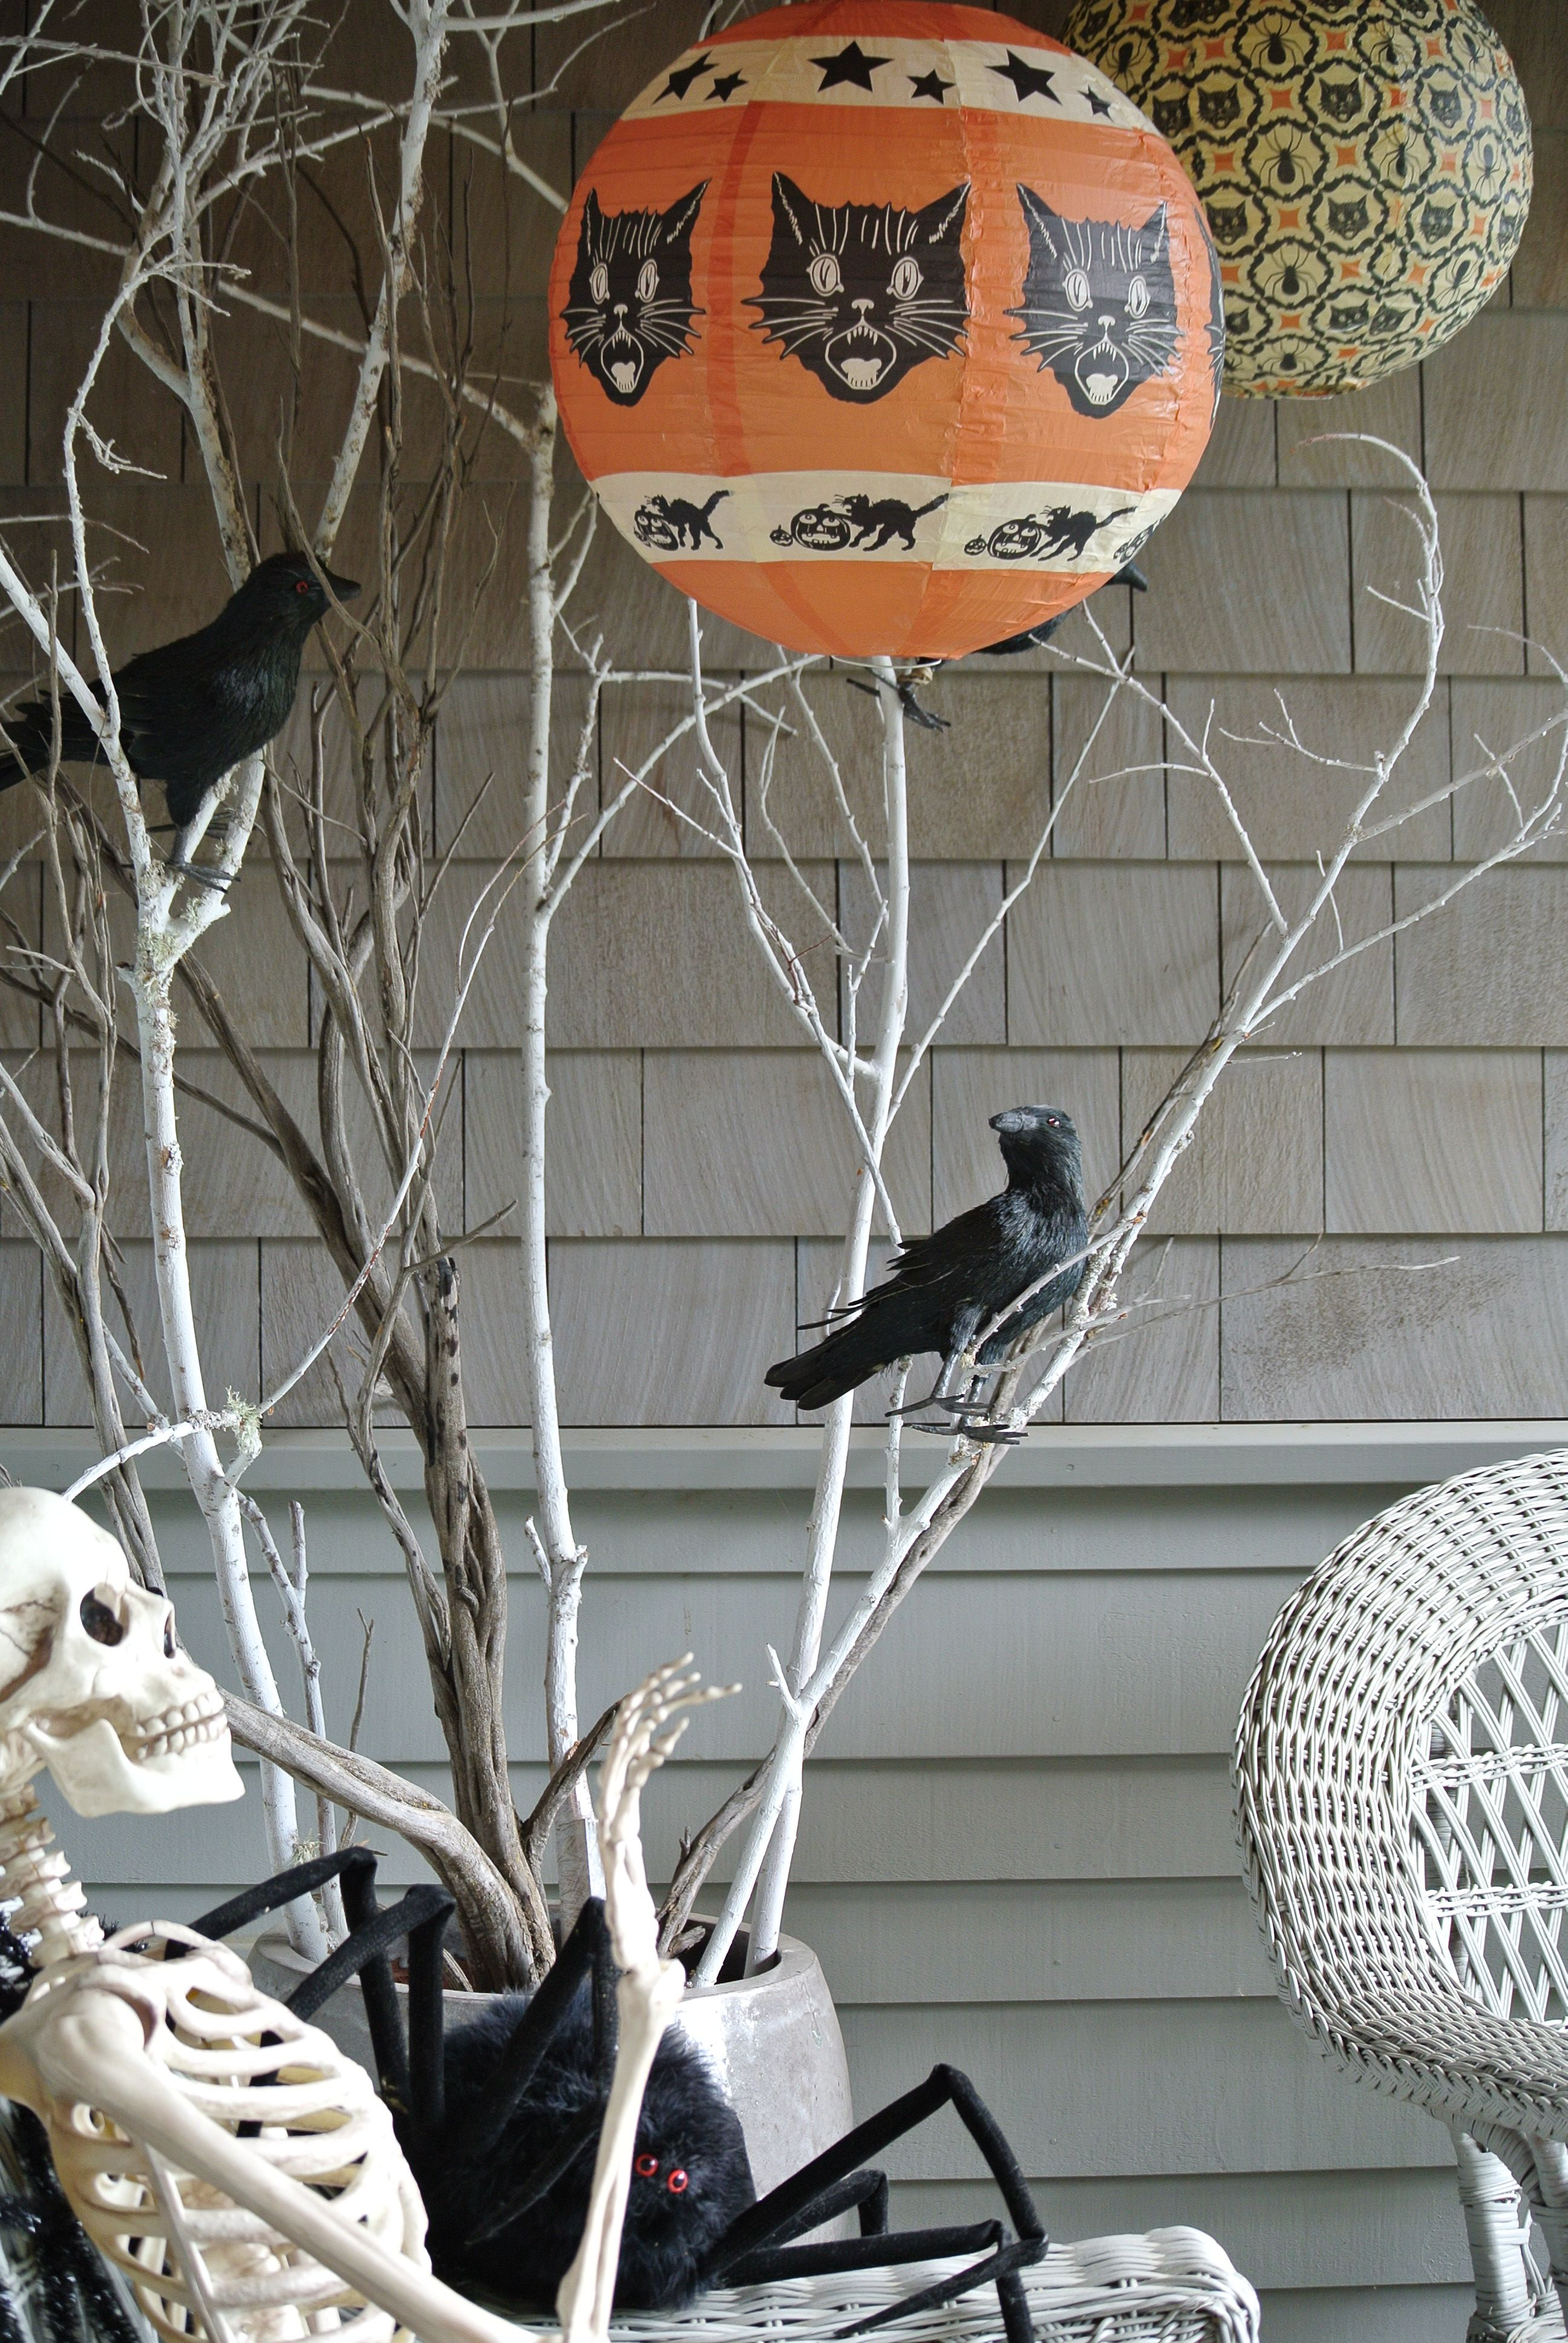 Front porch decor - scary?